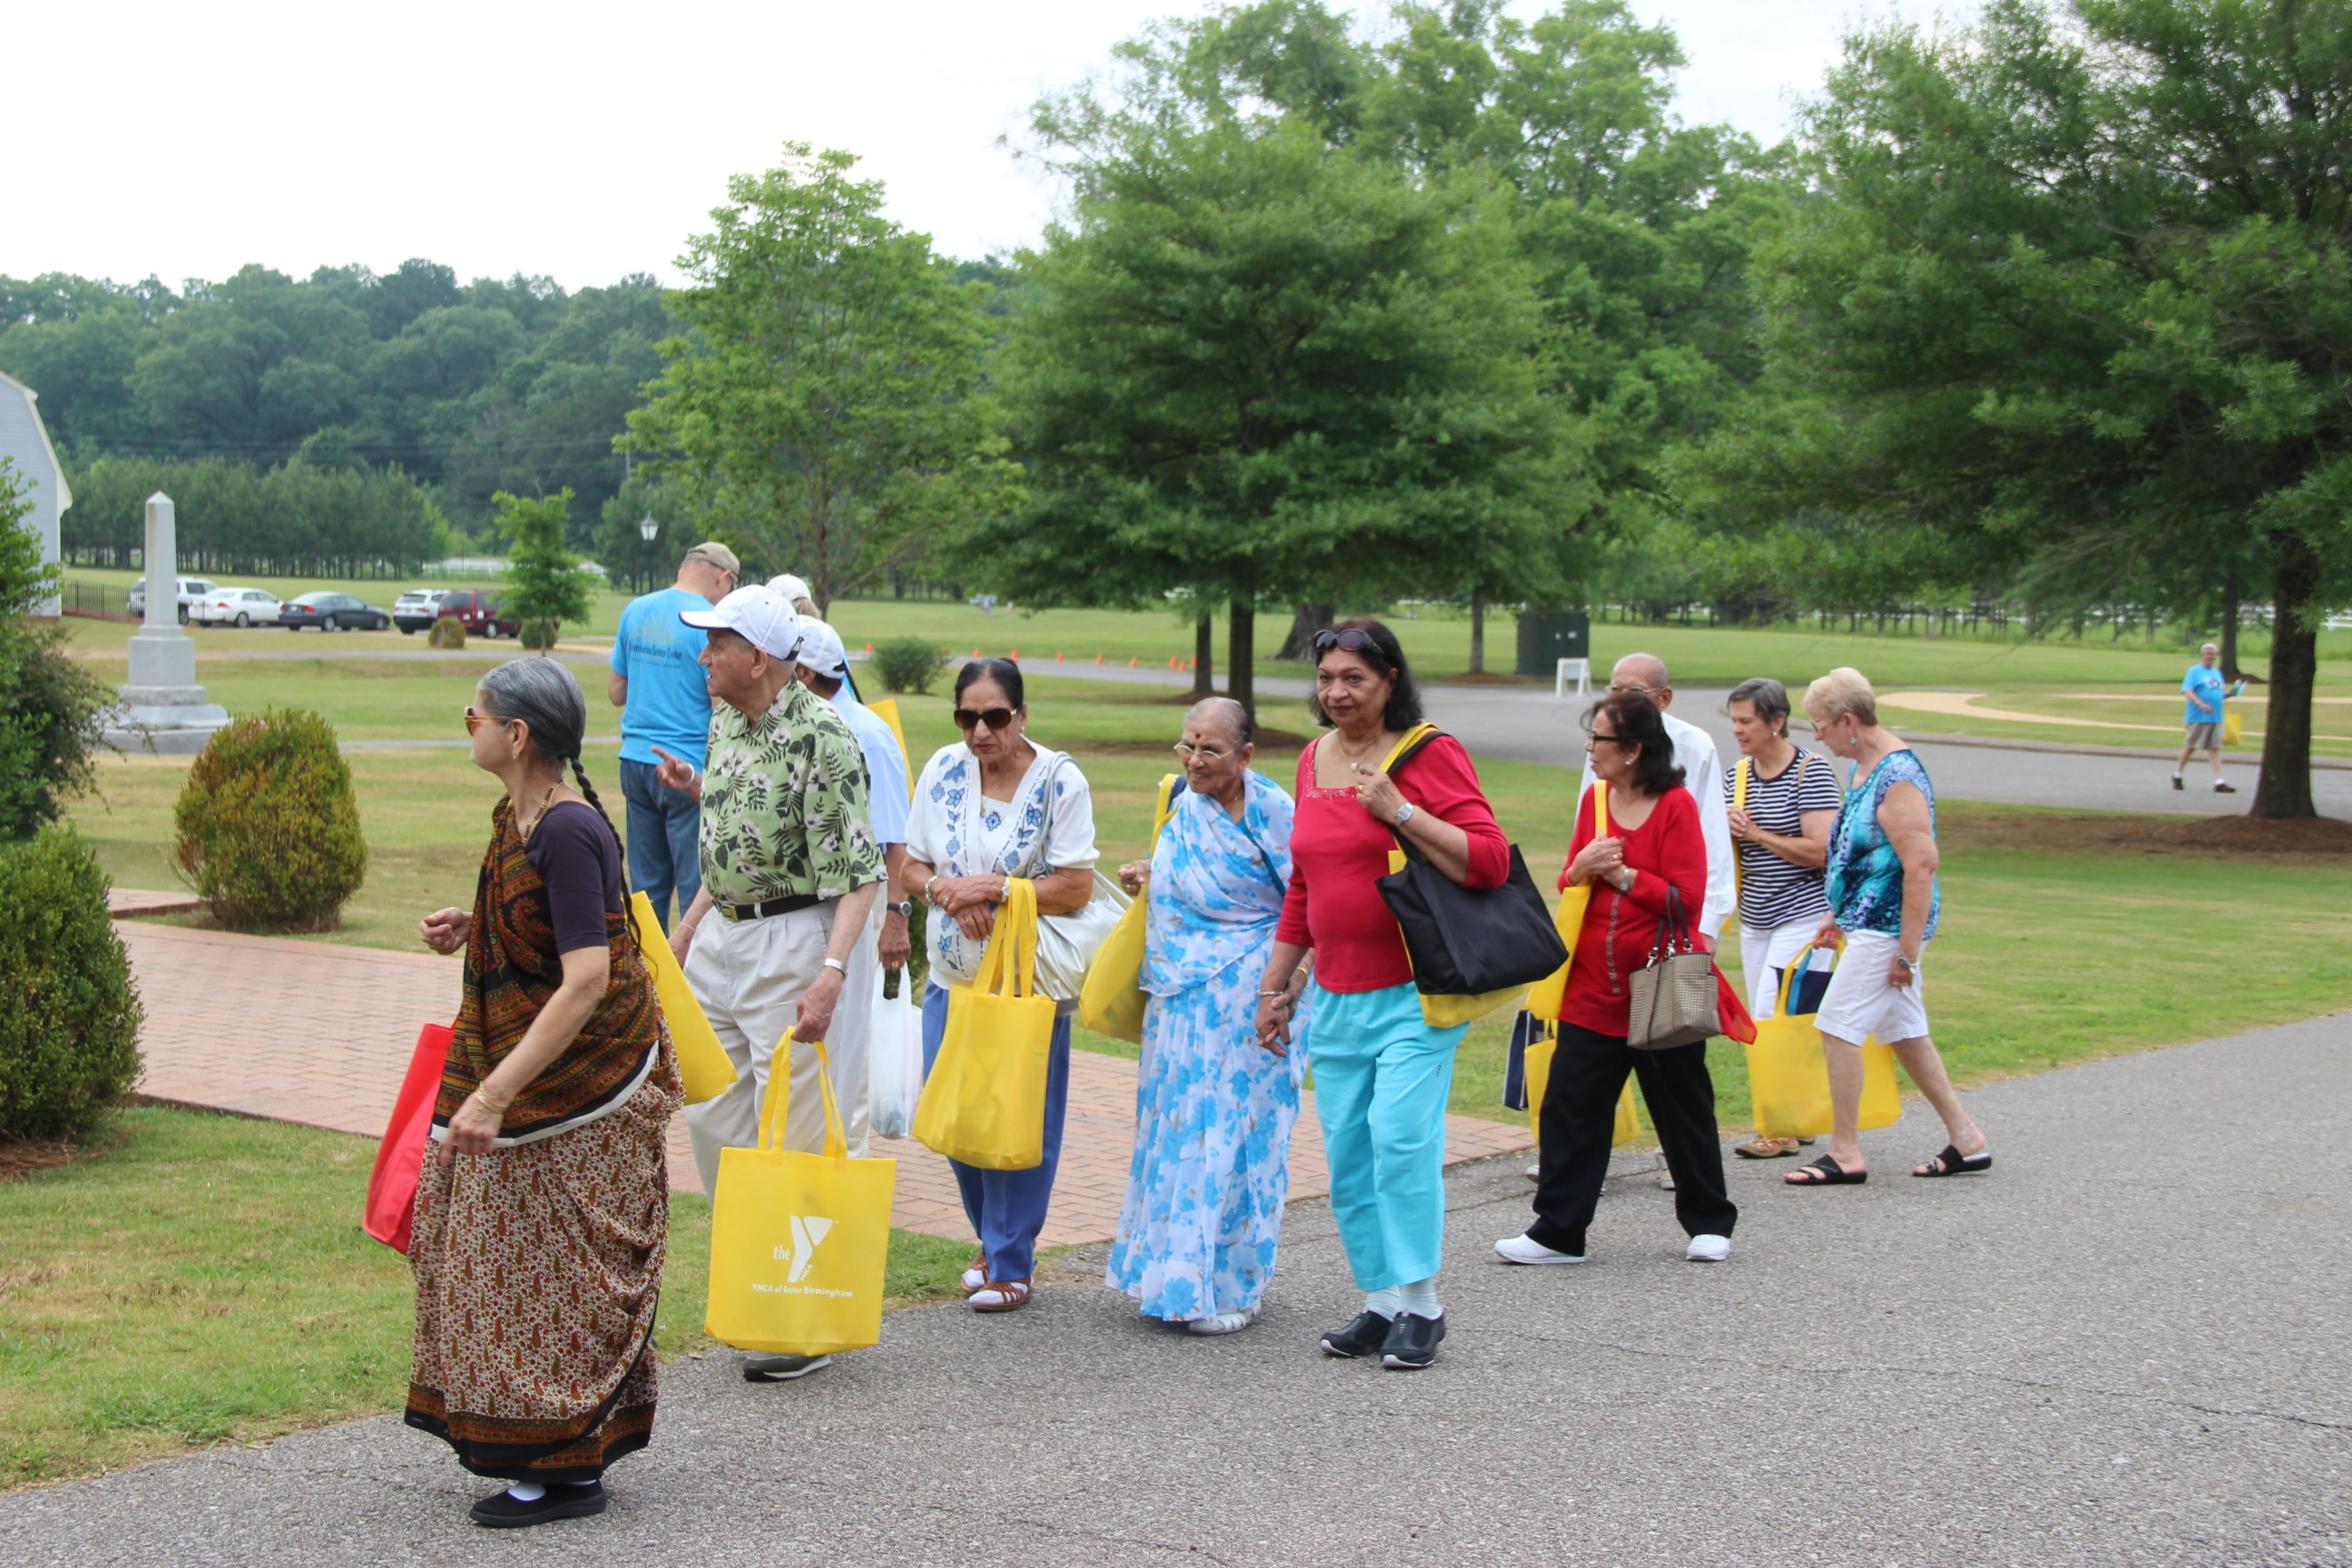 Image of people visiting attractions at The American Village